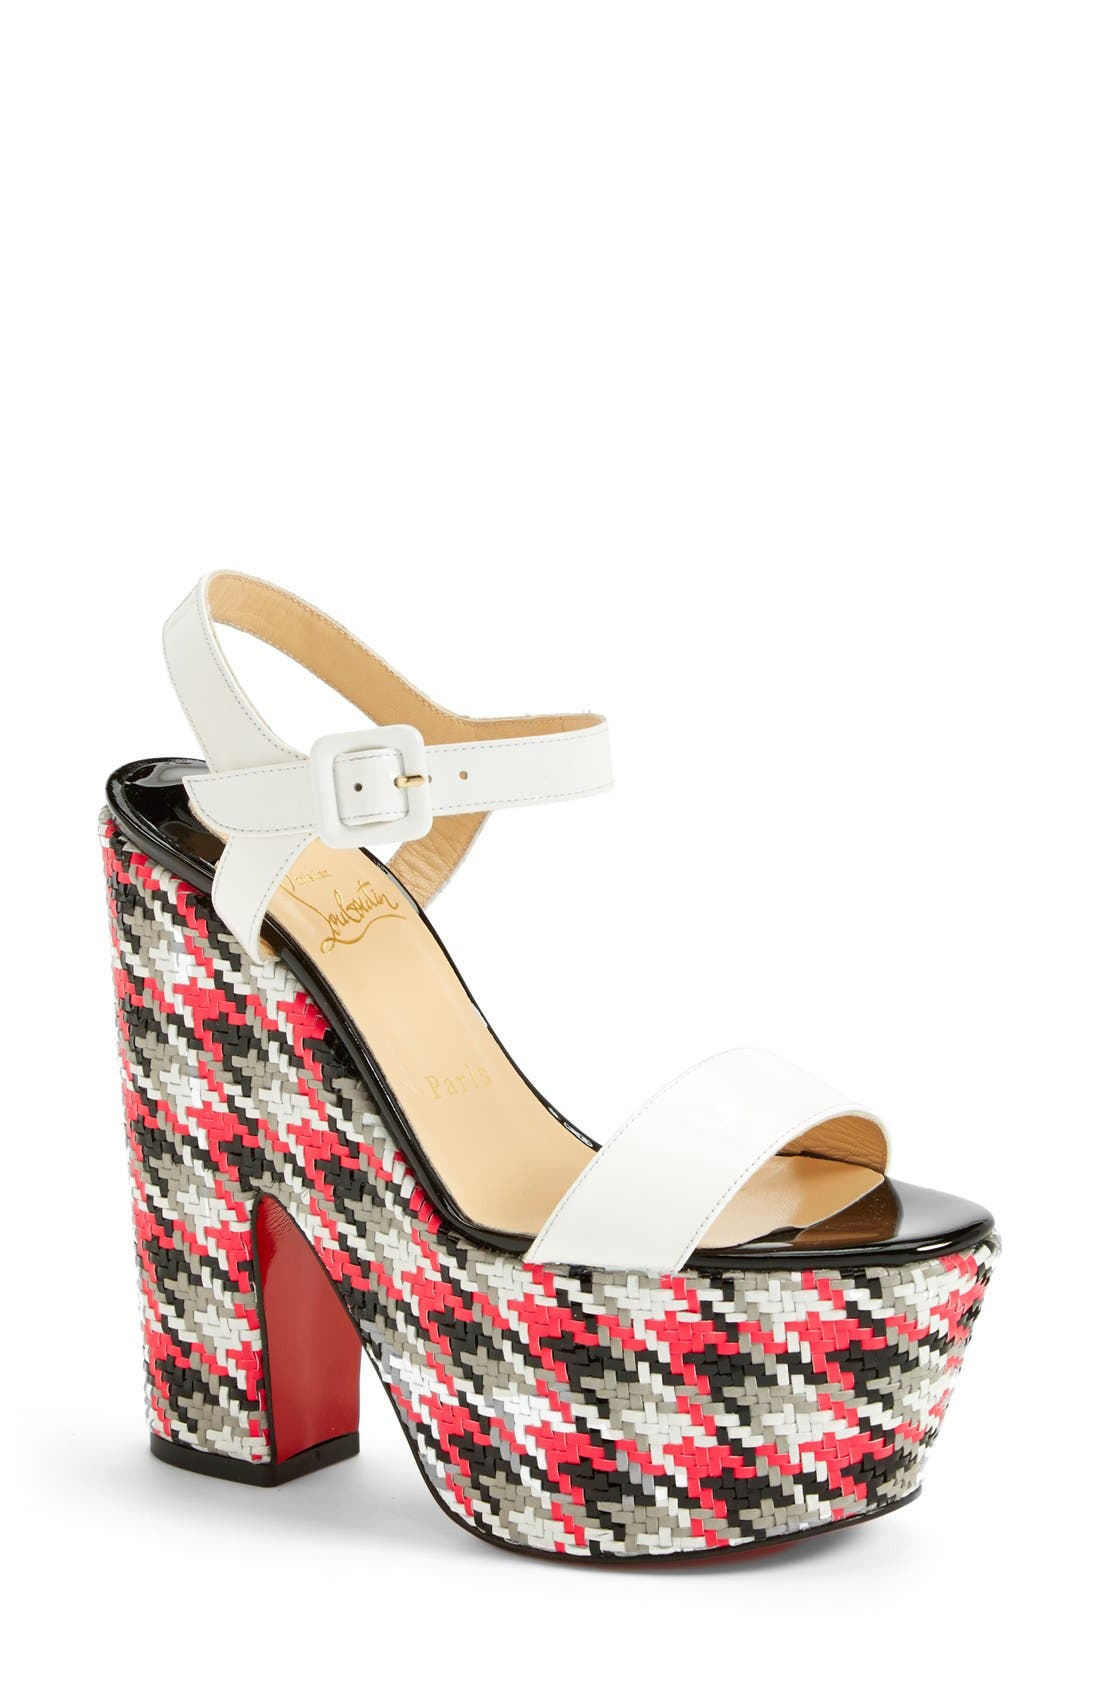 Alternate Image 1 Selected - Christian Louboutin 'Bella' Plaid Platform Sandal